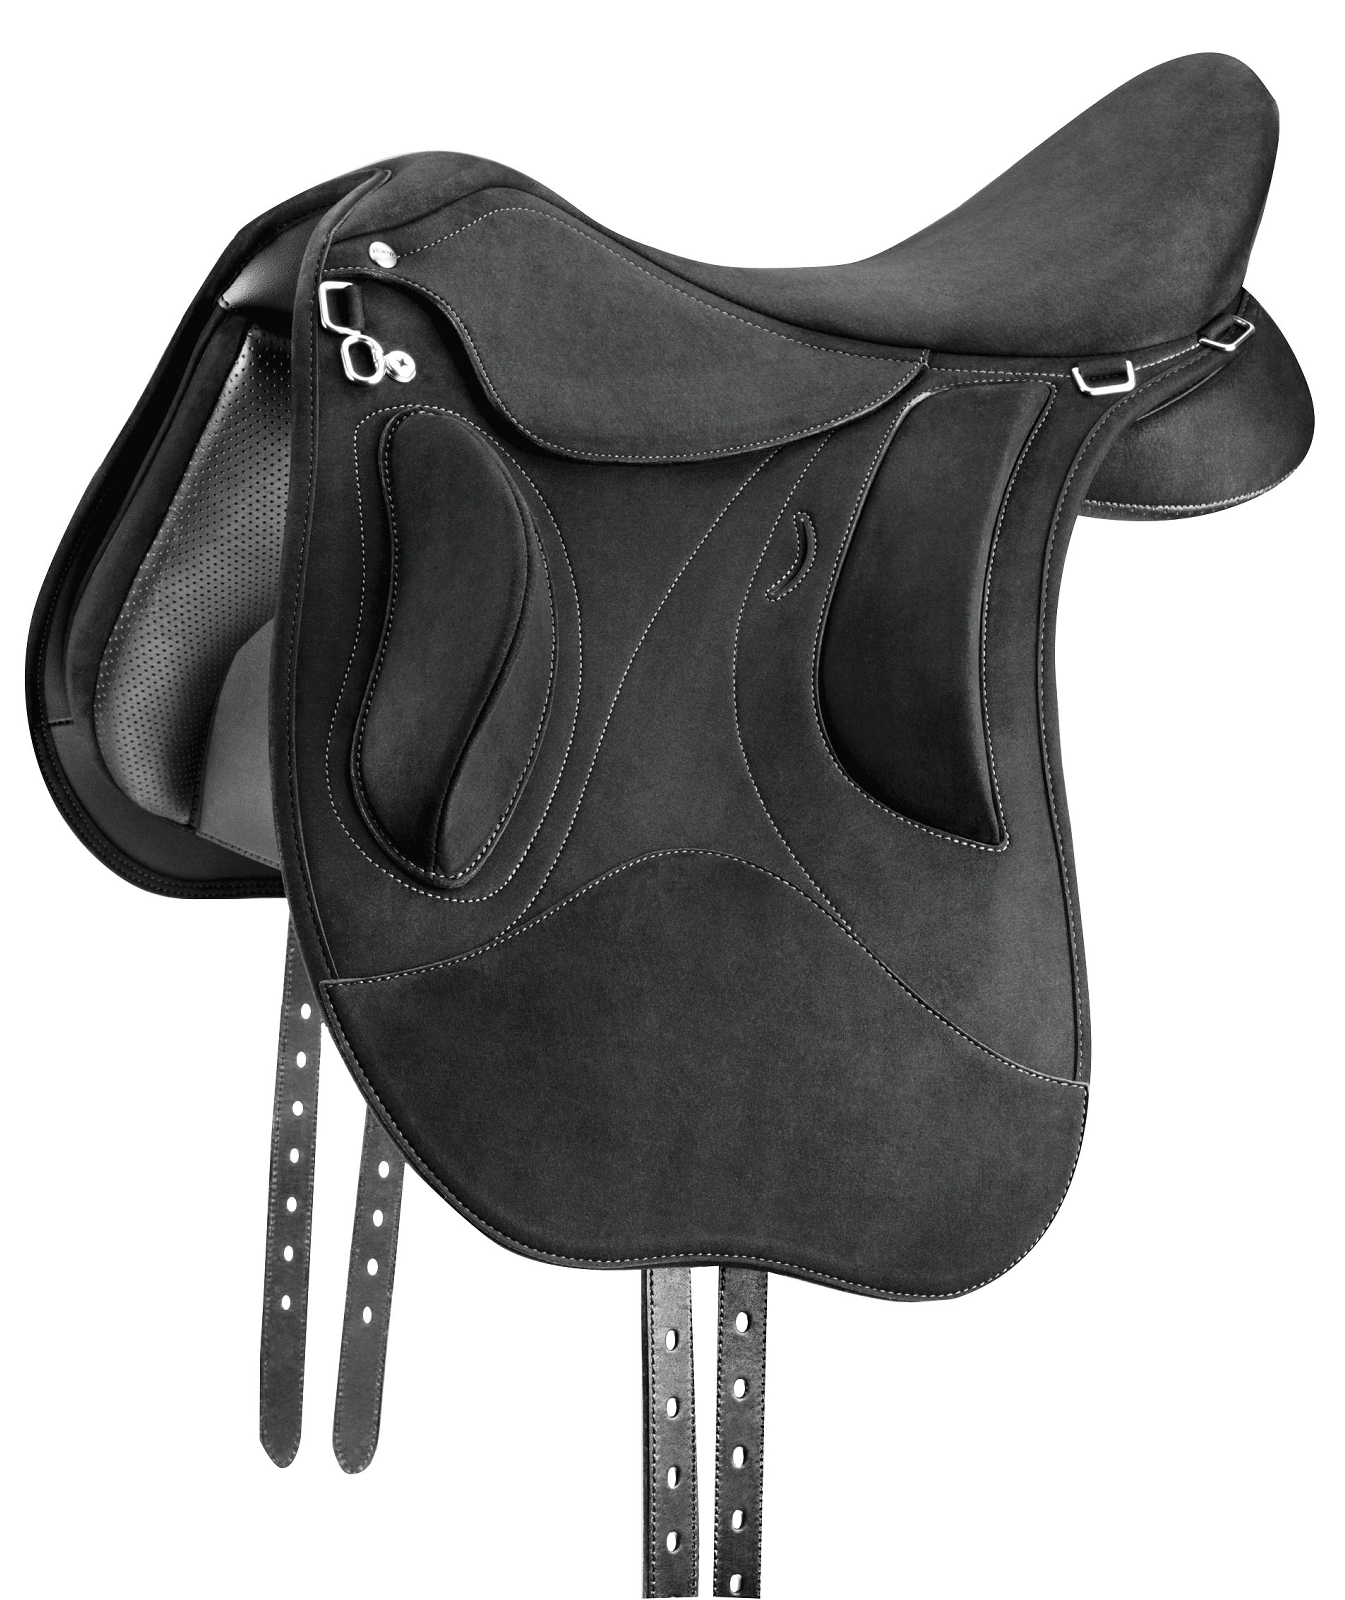 Wintec Pro Endurance Saddle With Flexicontourbloc - Flocked